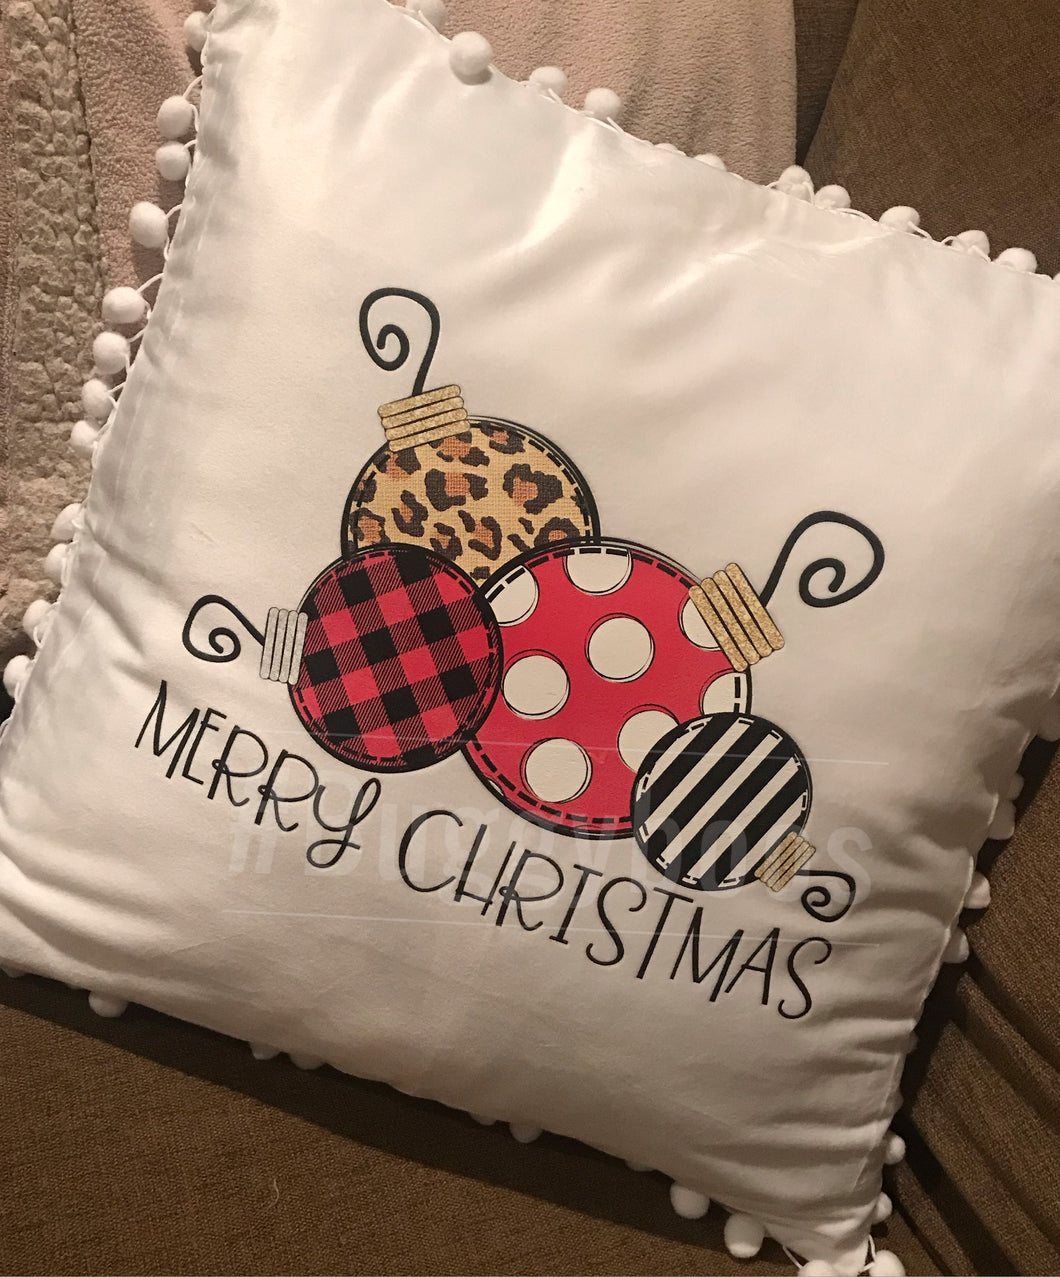 Merry Christmas Jingle Bells 18x18 pillow - Buggy Boos Embroidery